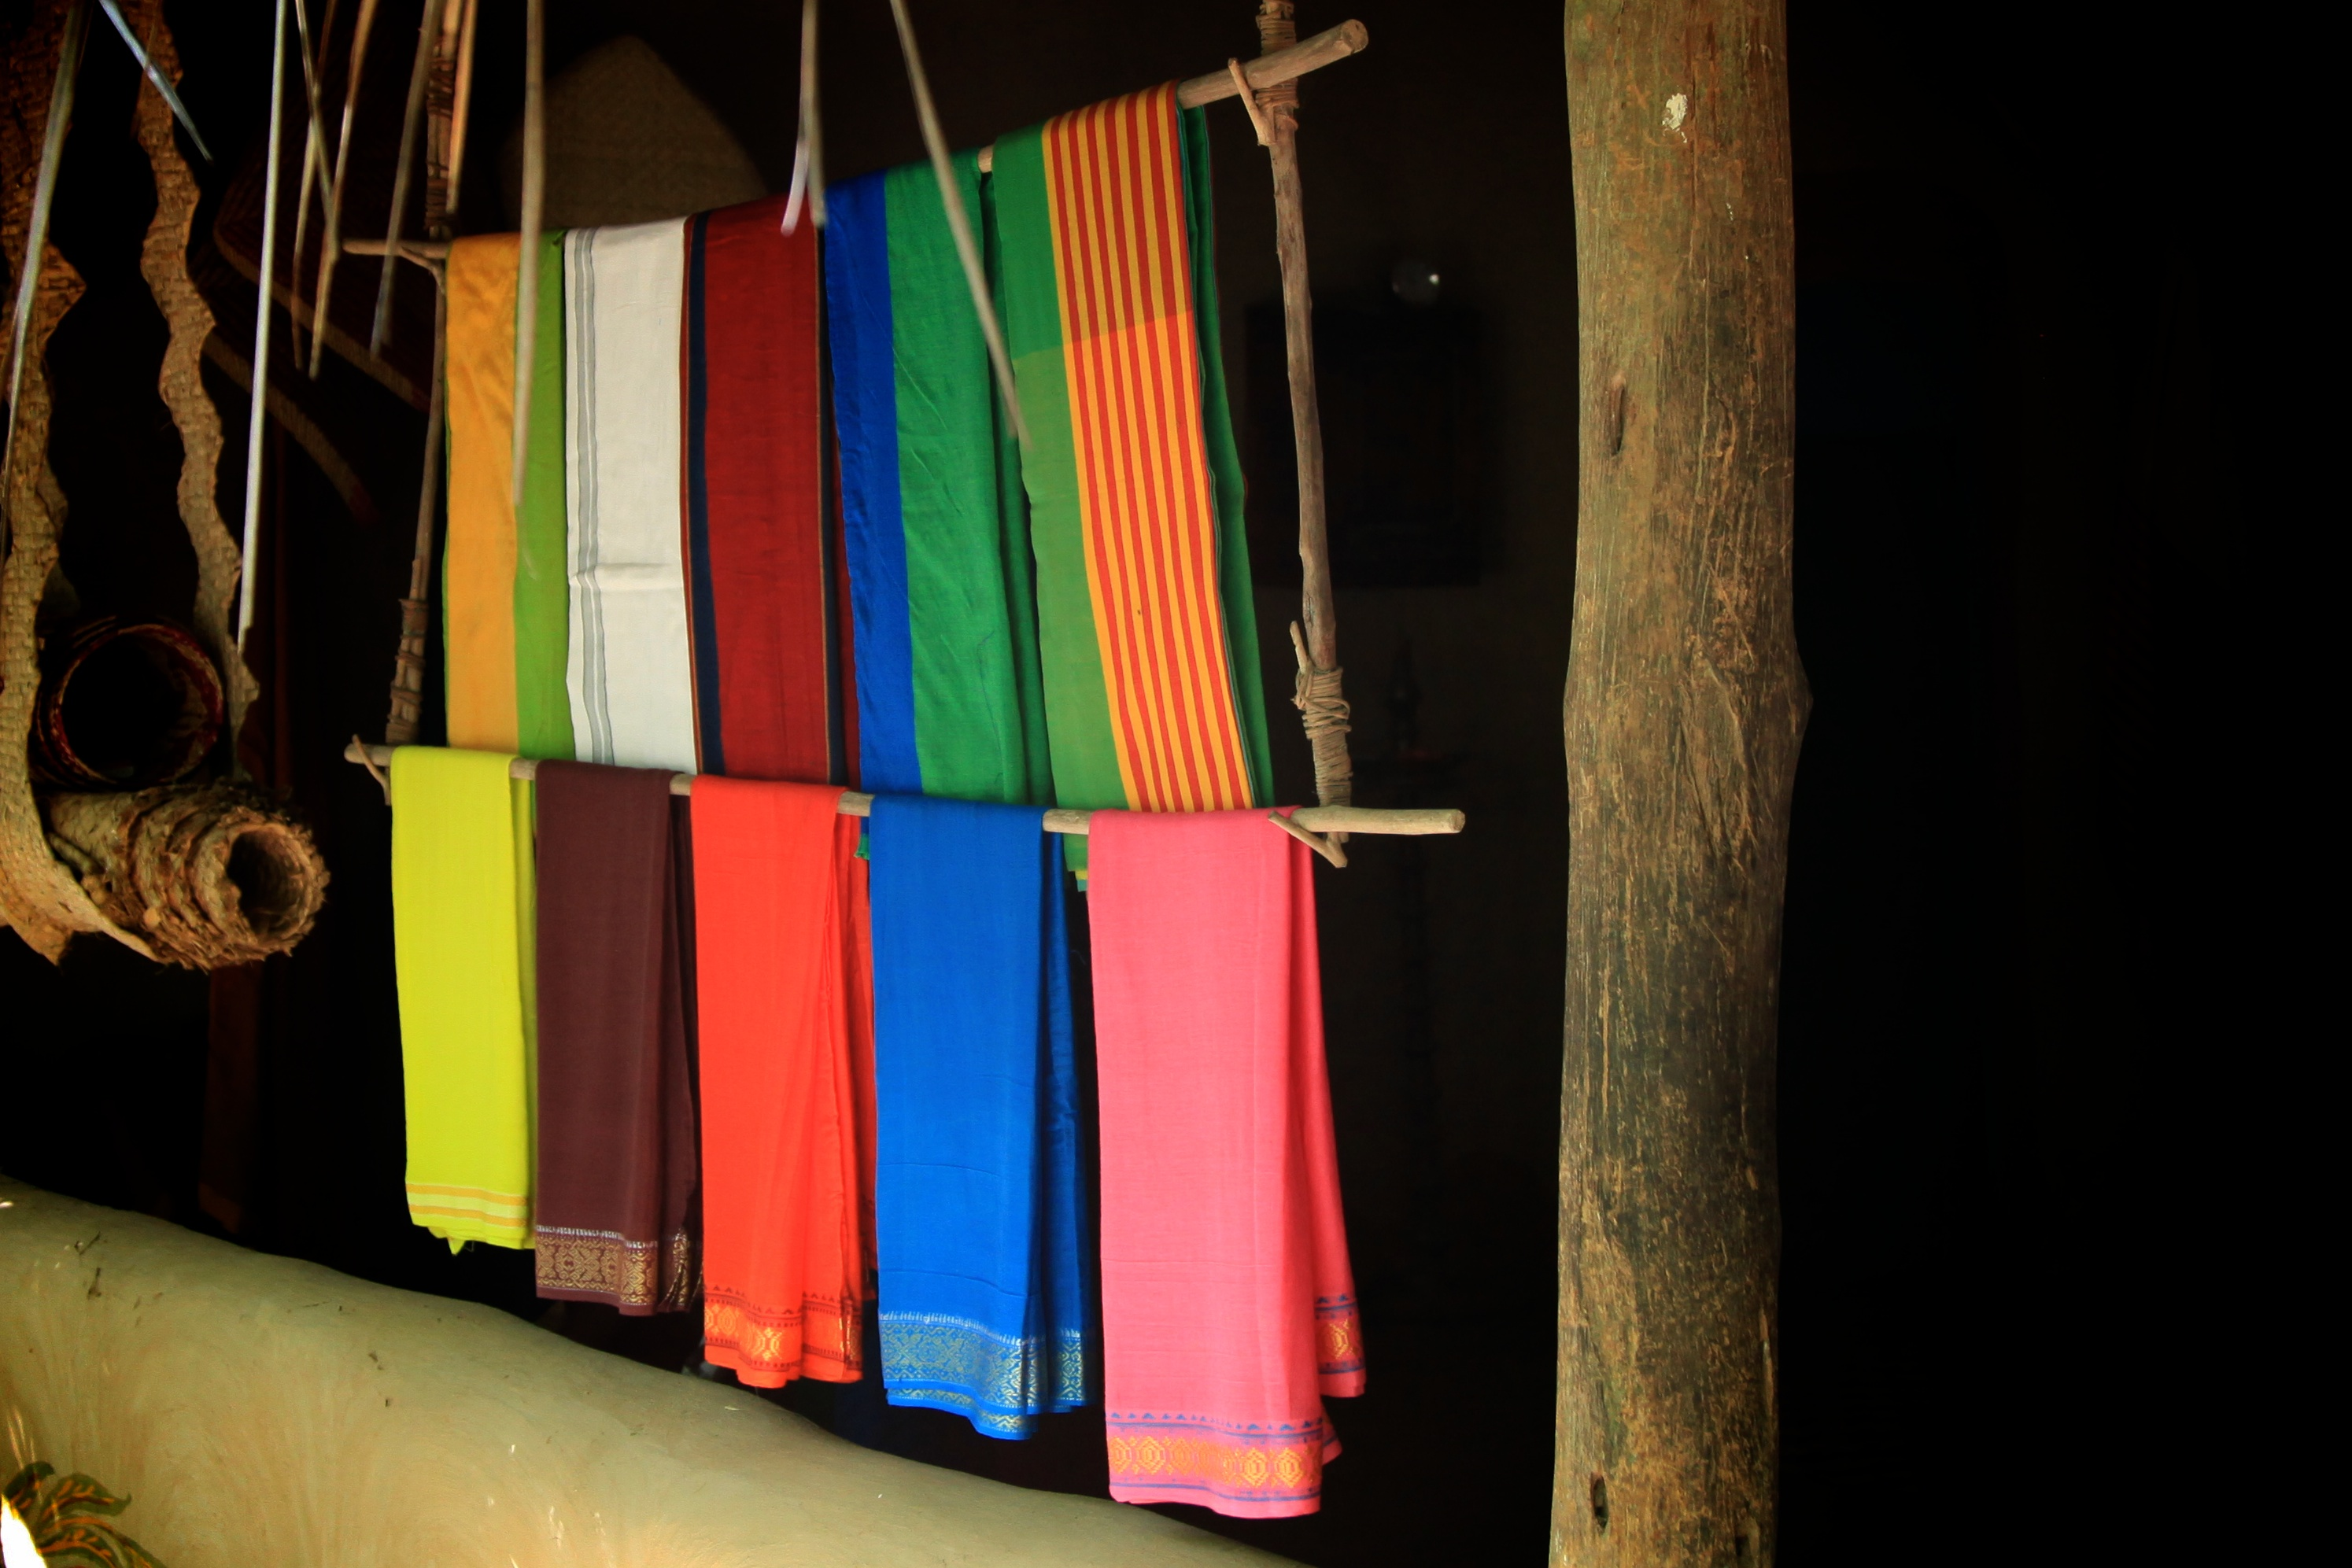 Hanging cloths in accommodations